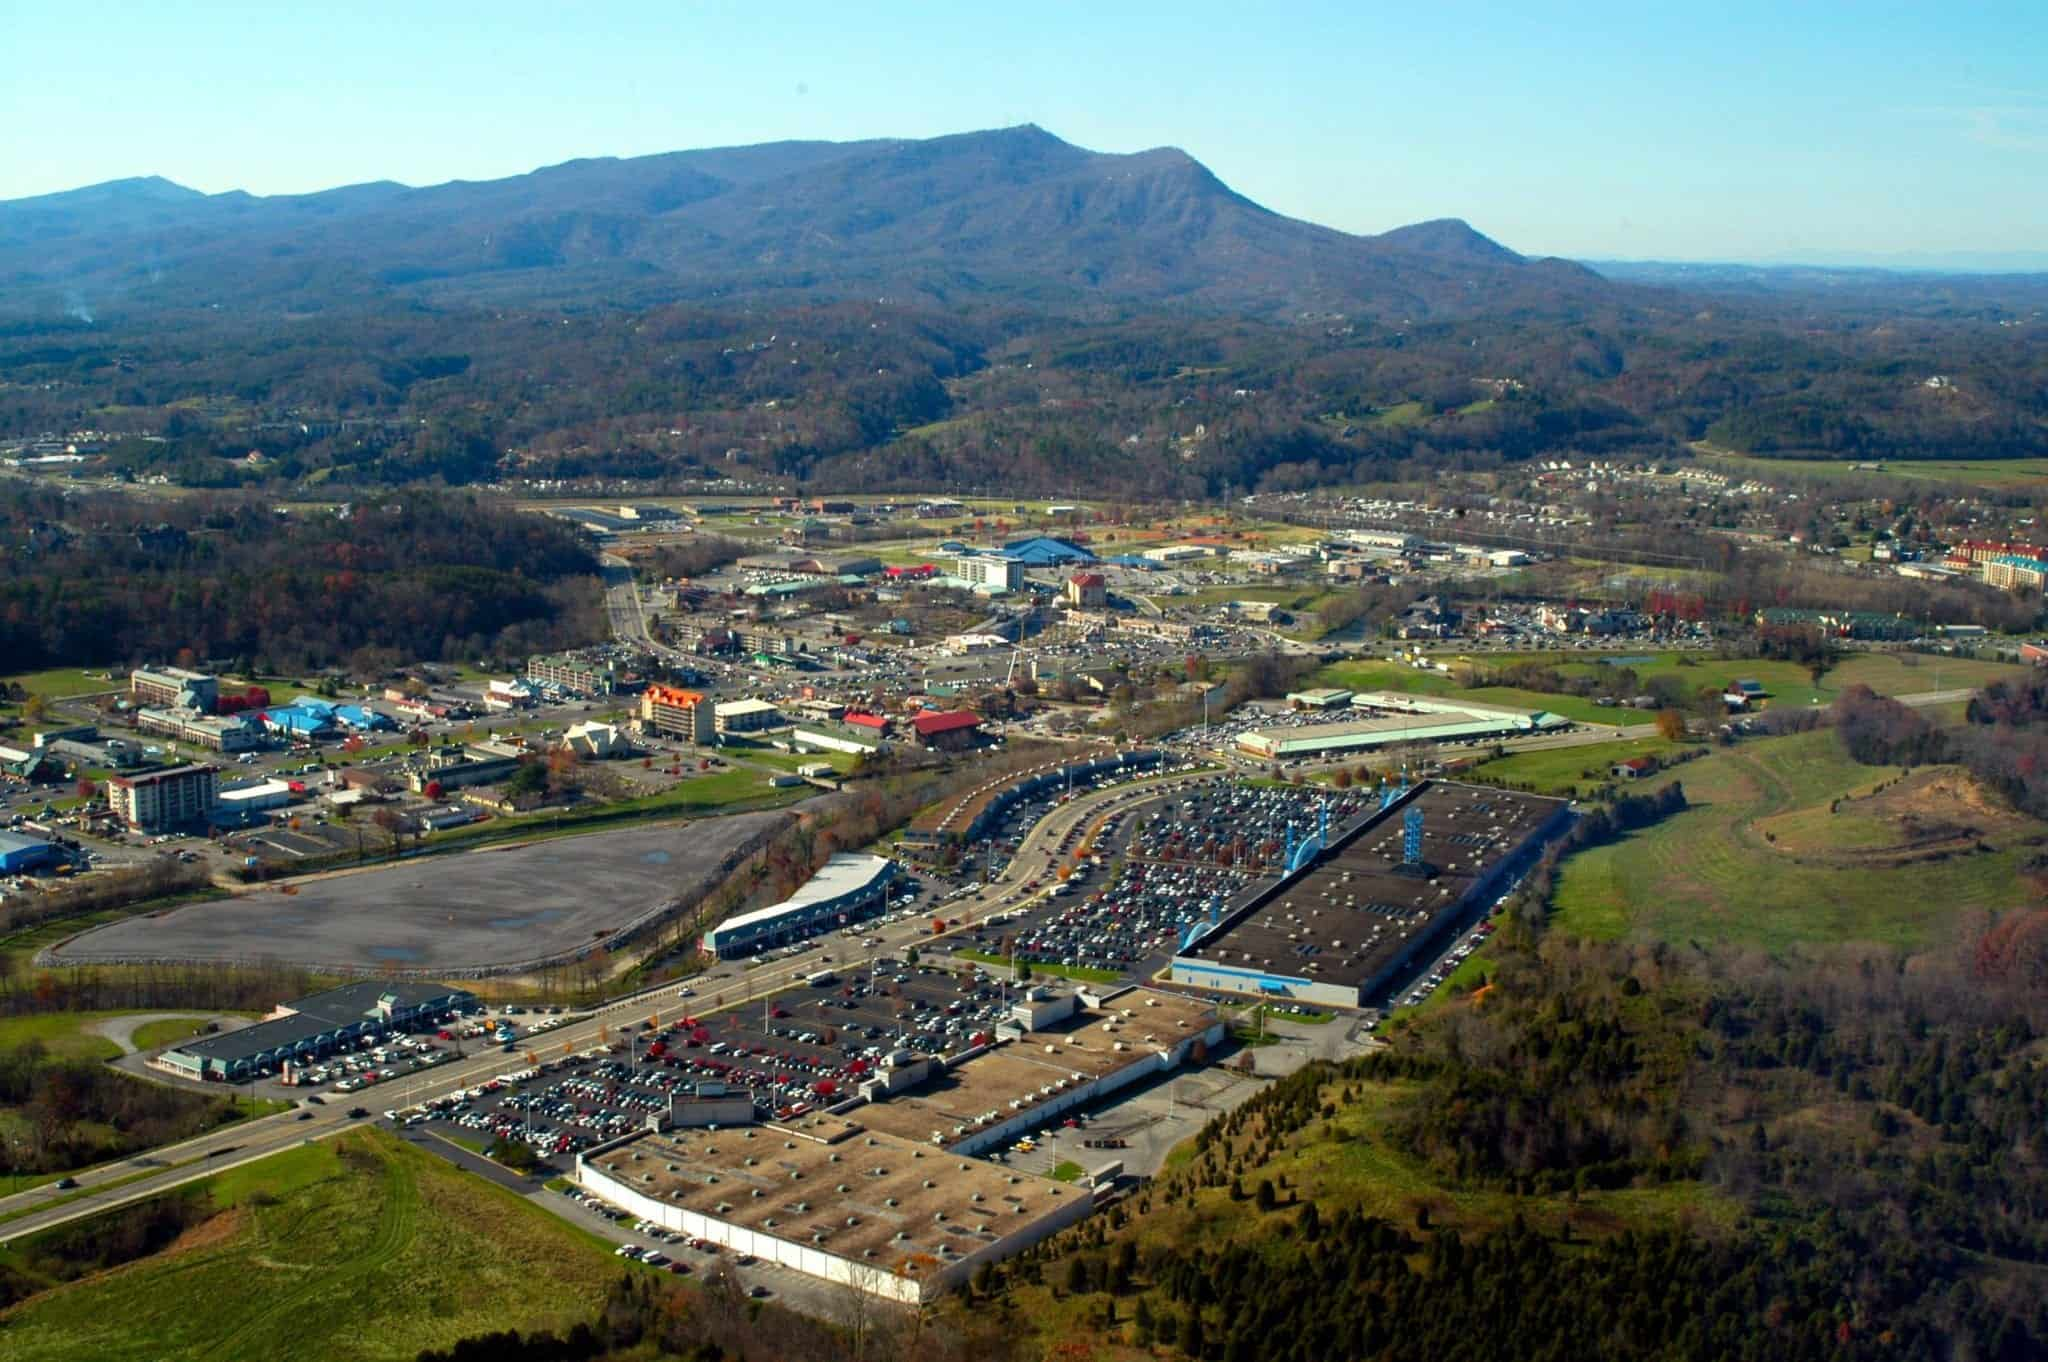 Aerial view of Pigeon Forge, Tennessee